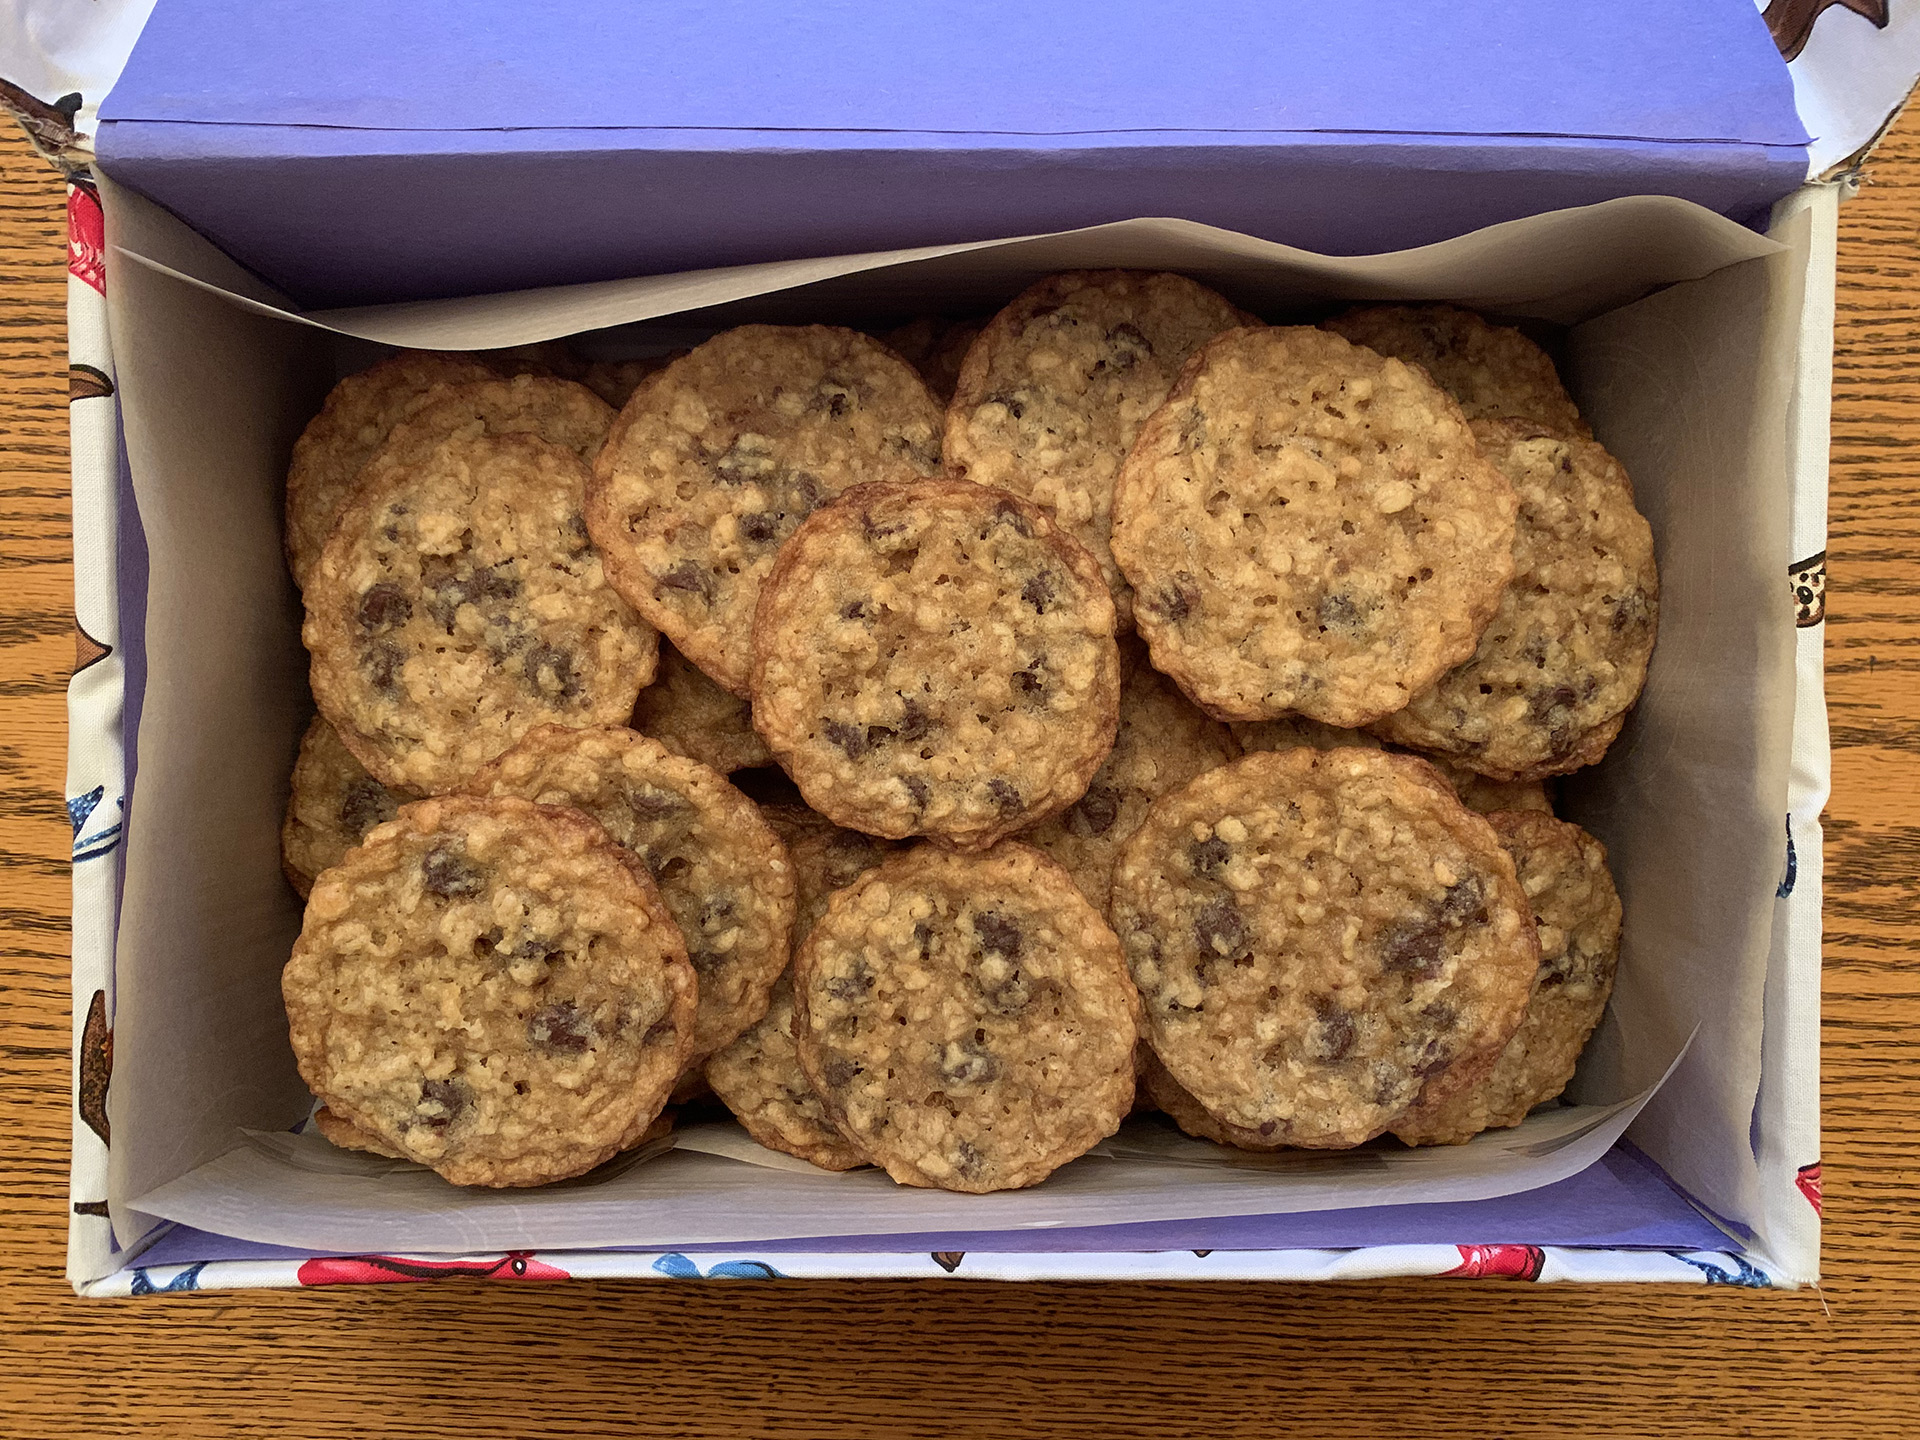 photo of cookies in the shoebox